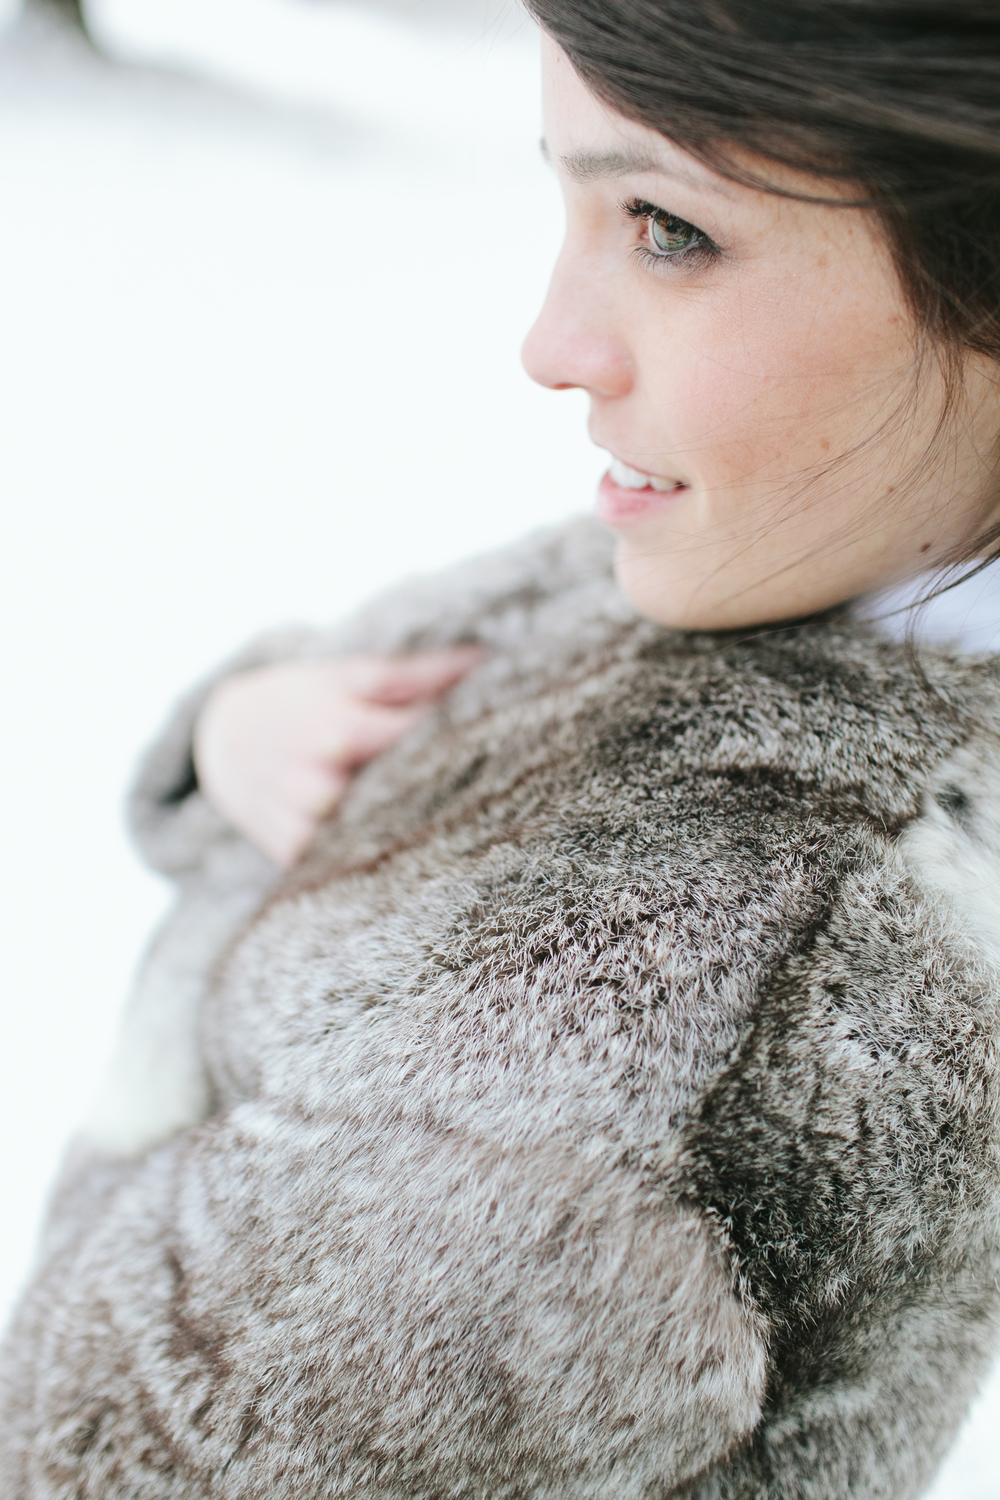 Atlanta-Fashion-Photographer-Kathryn-McCrary-Photography-Snow-Snowlanta-Fur-Coat-15.jpg